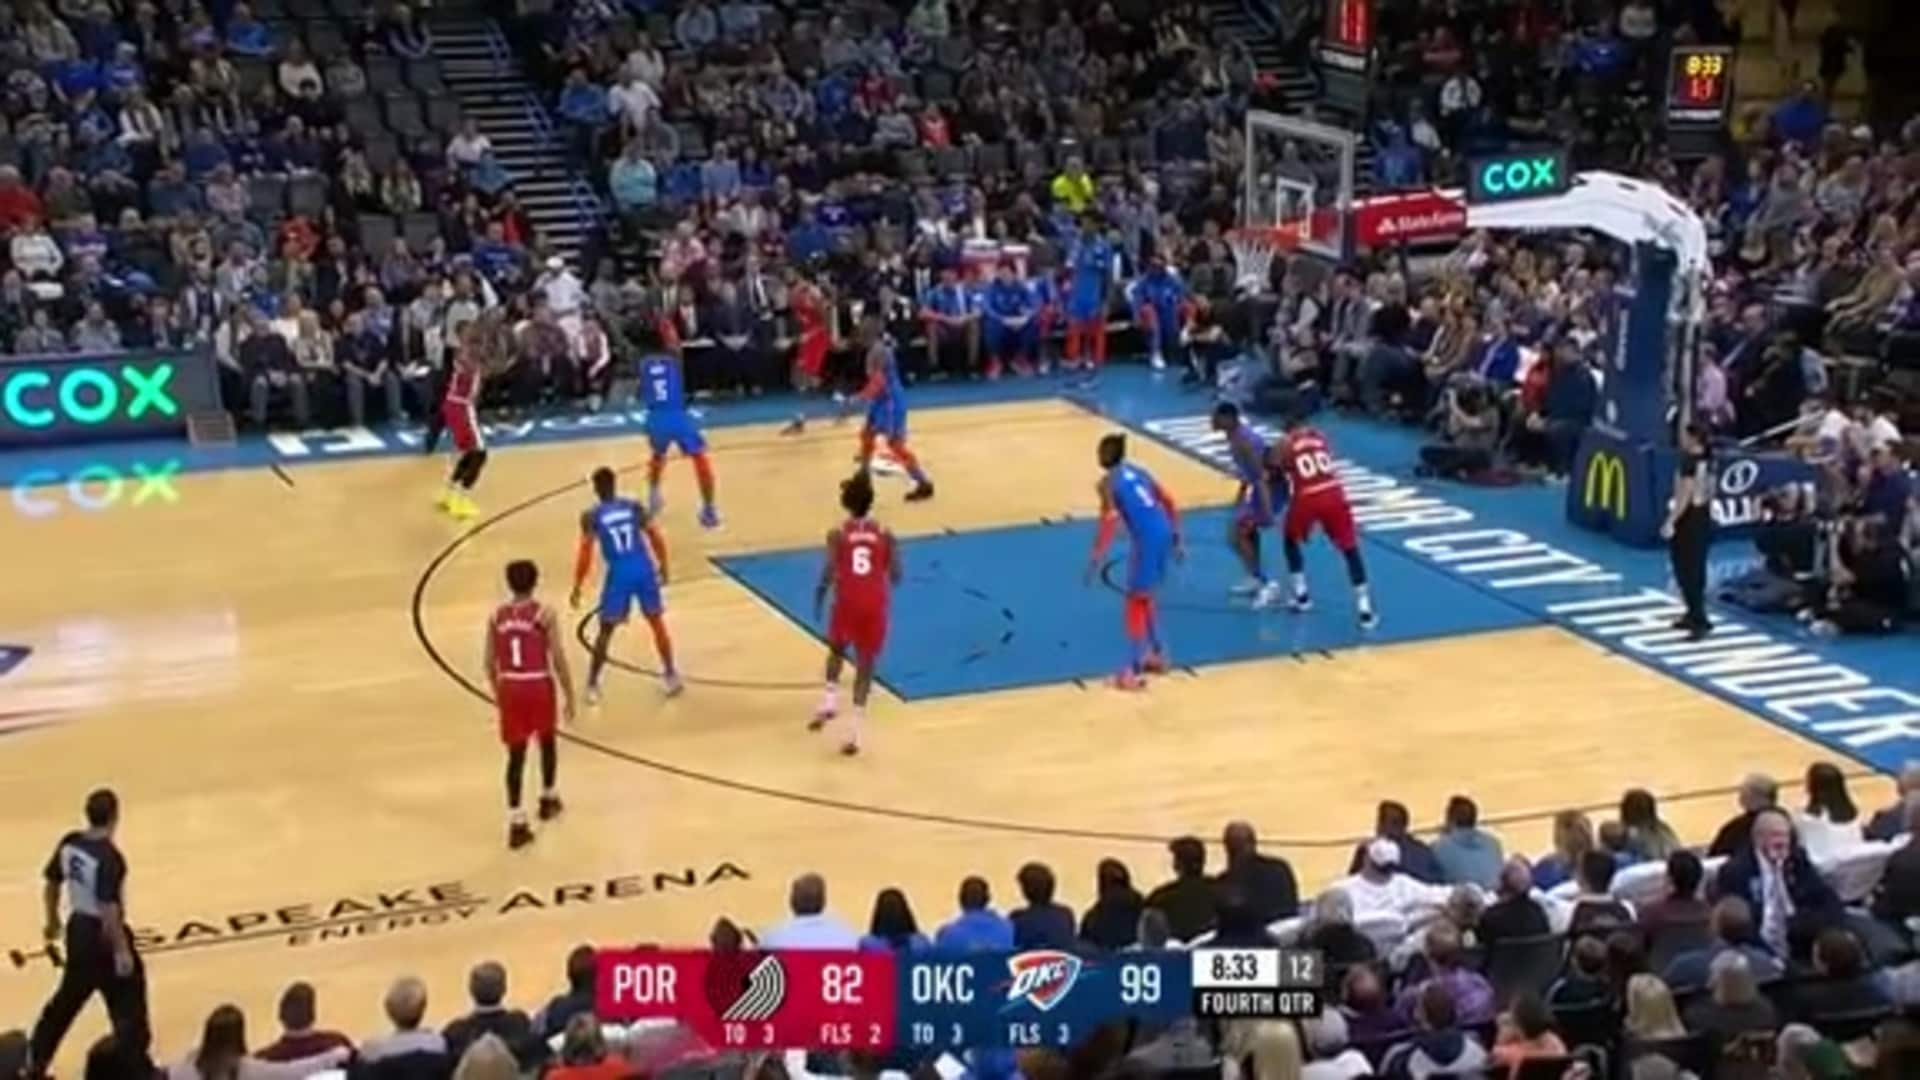 Damian Lillard (34 PTS, 6 AST) Highlights vs. Thunder